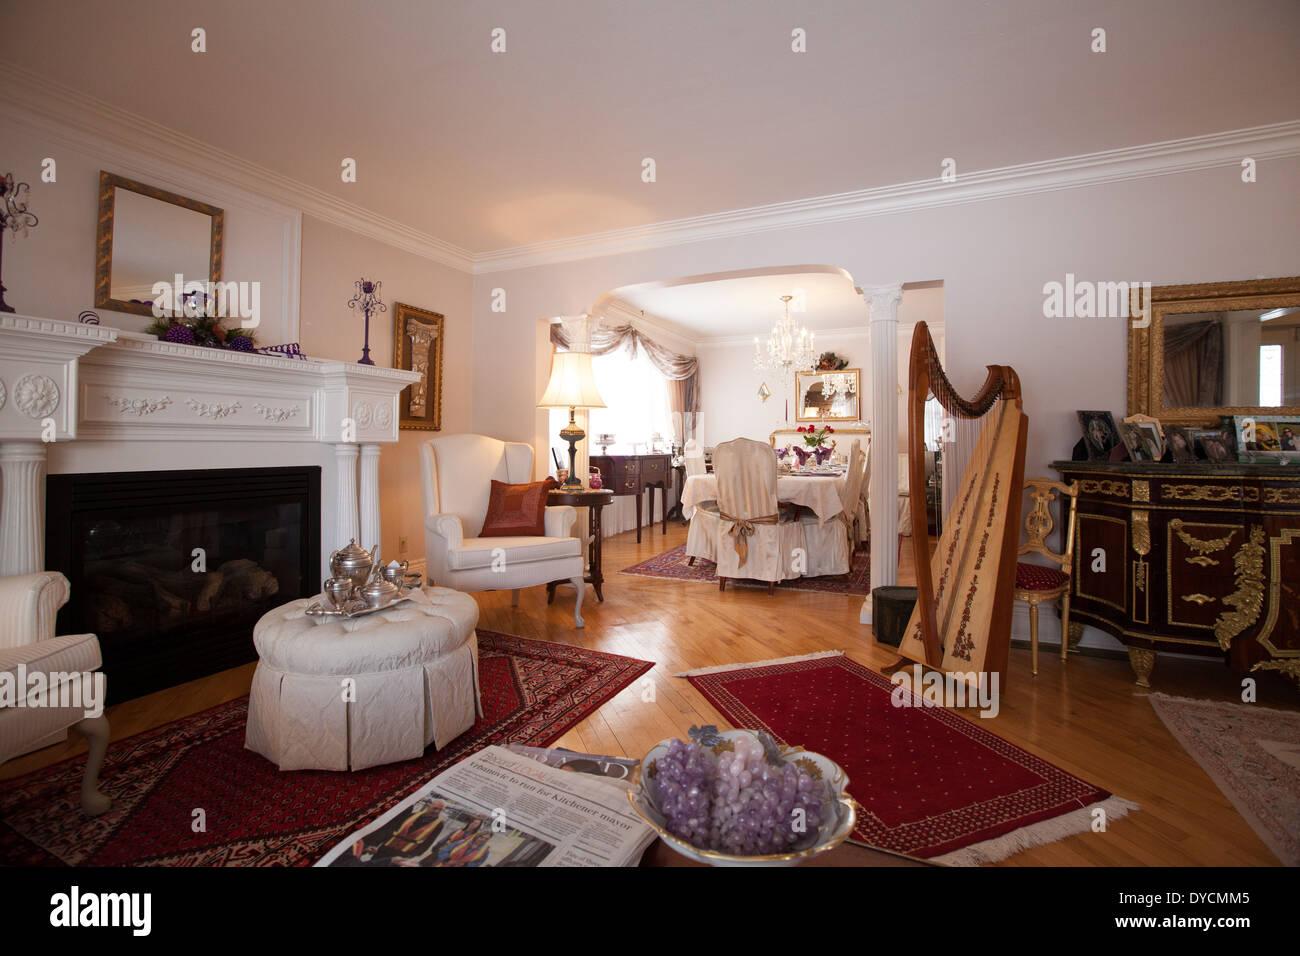 victorian style home interior - Stock Image